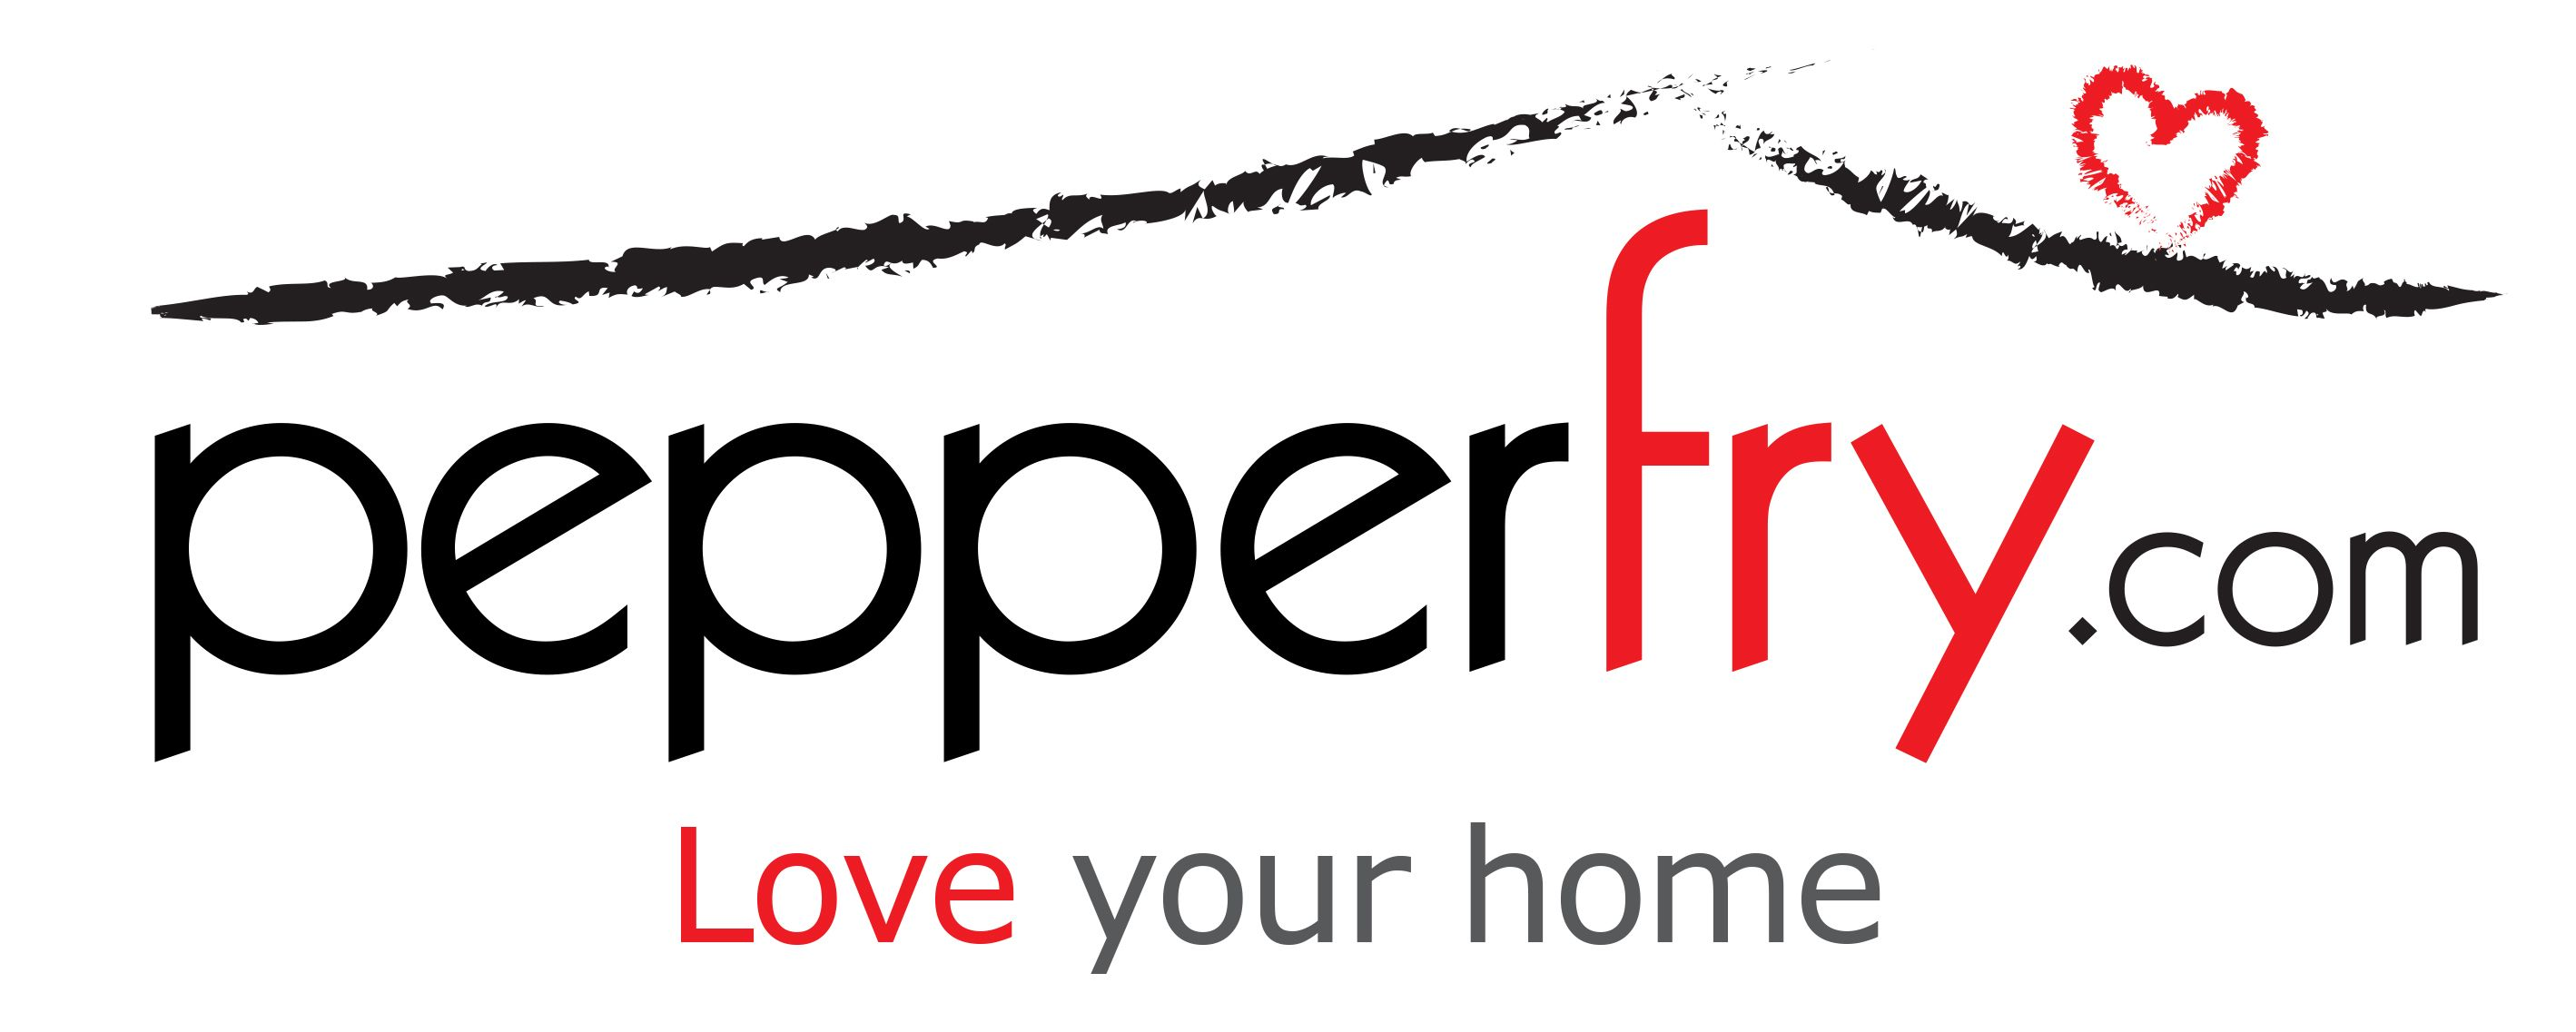 Pepperfry coupons, Promo codes, Coupon Codes for July 2014 - http://www.savezippy.com/pepperfry/coupons